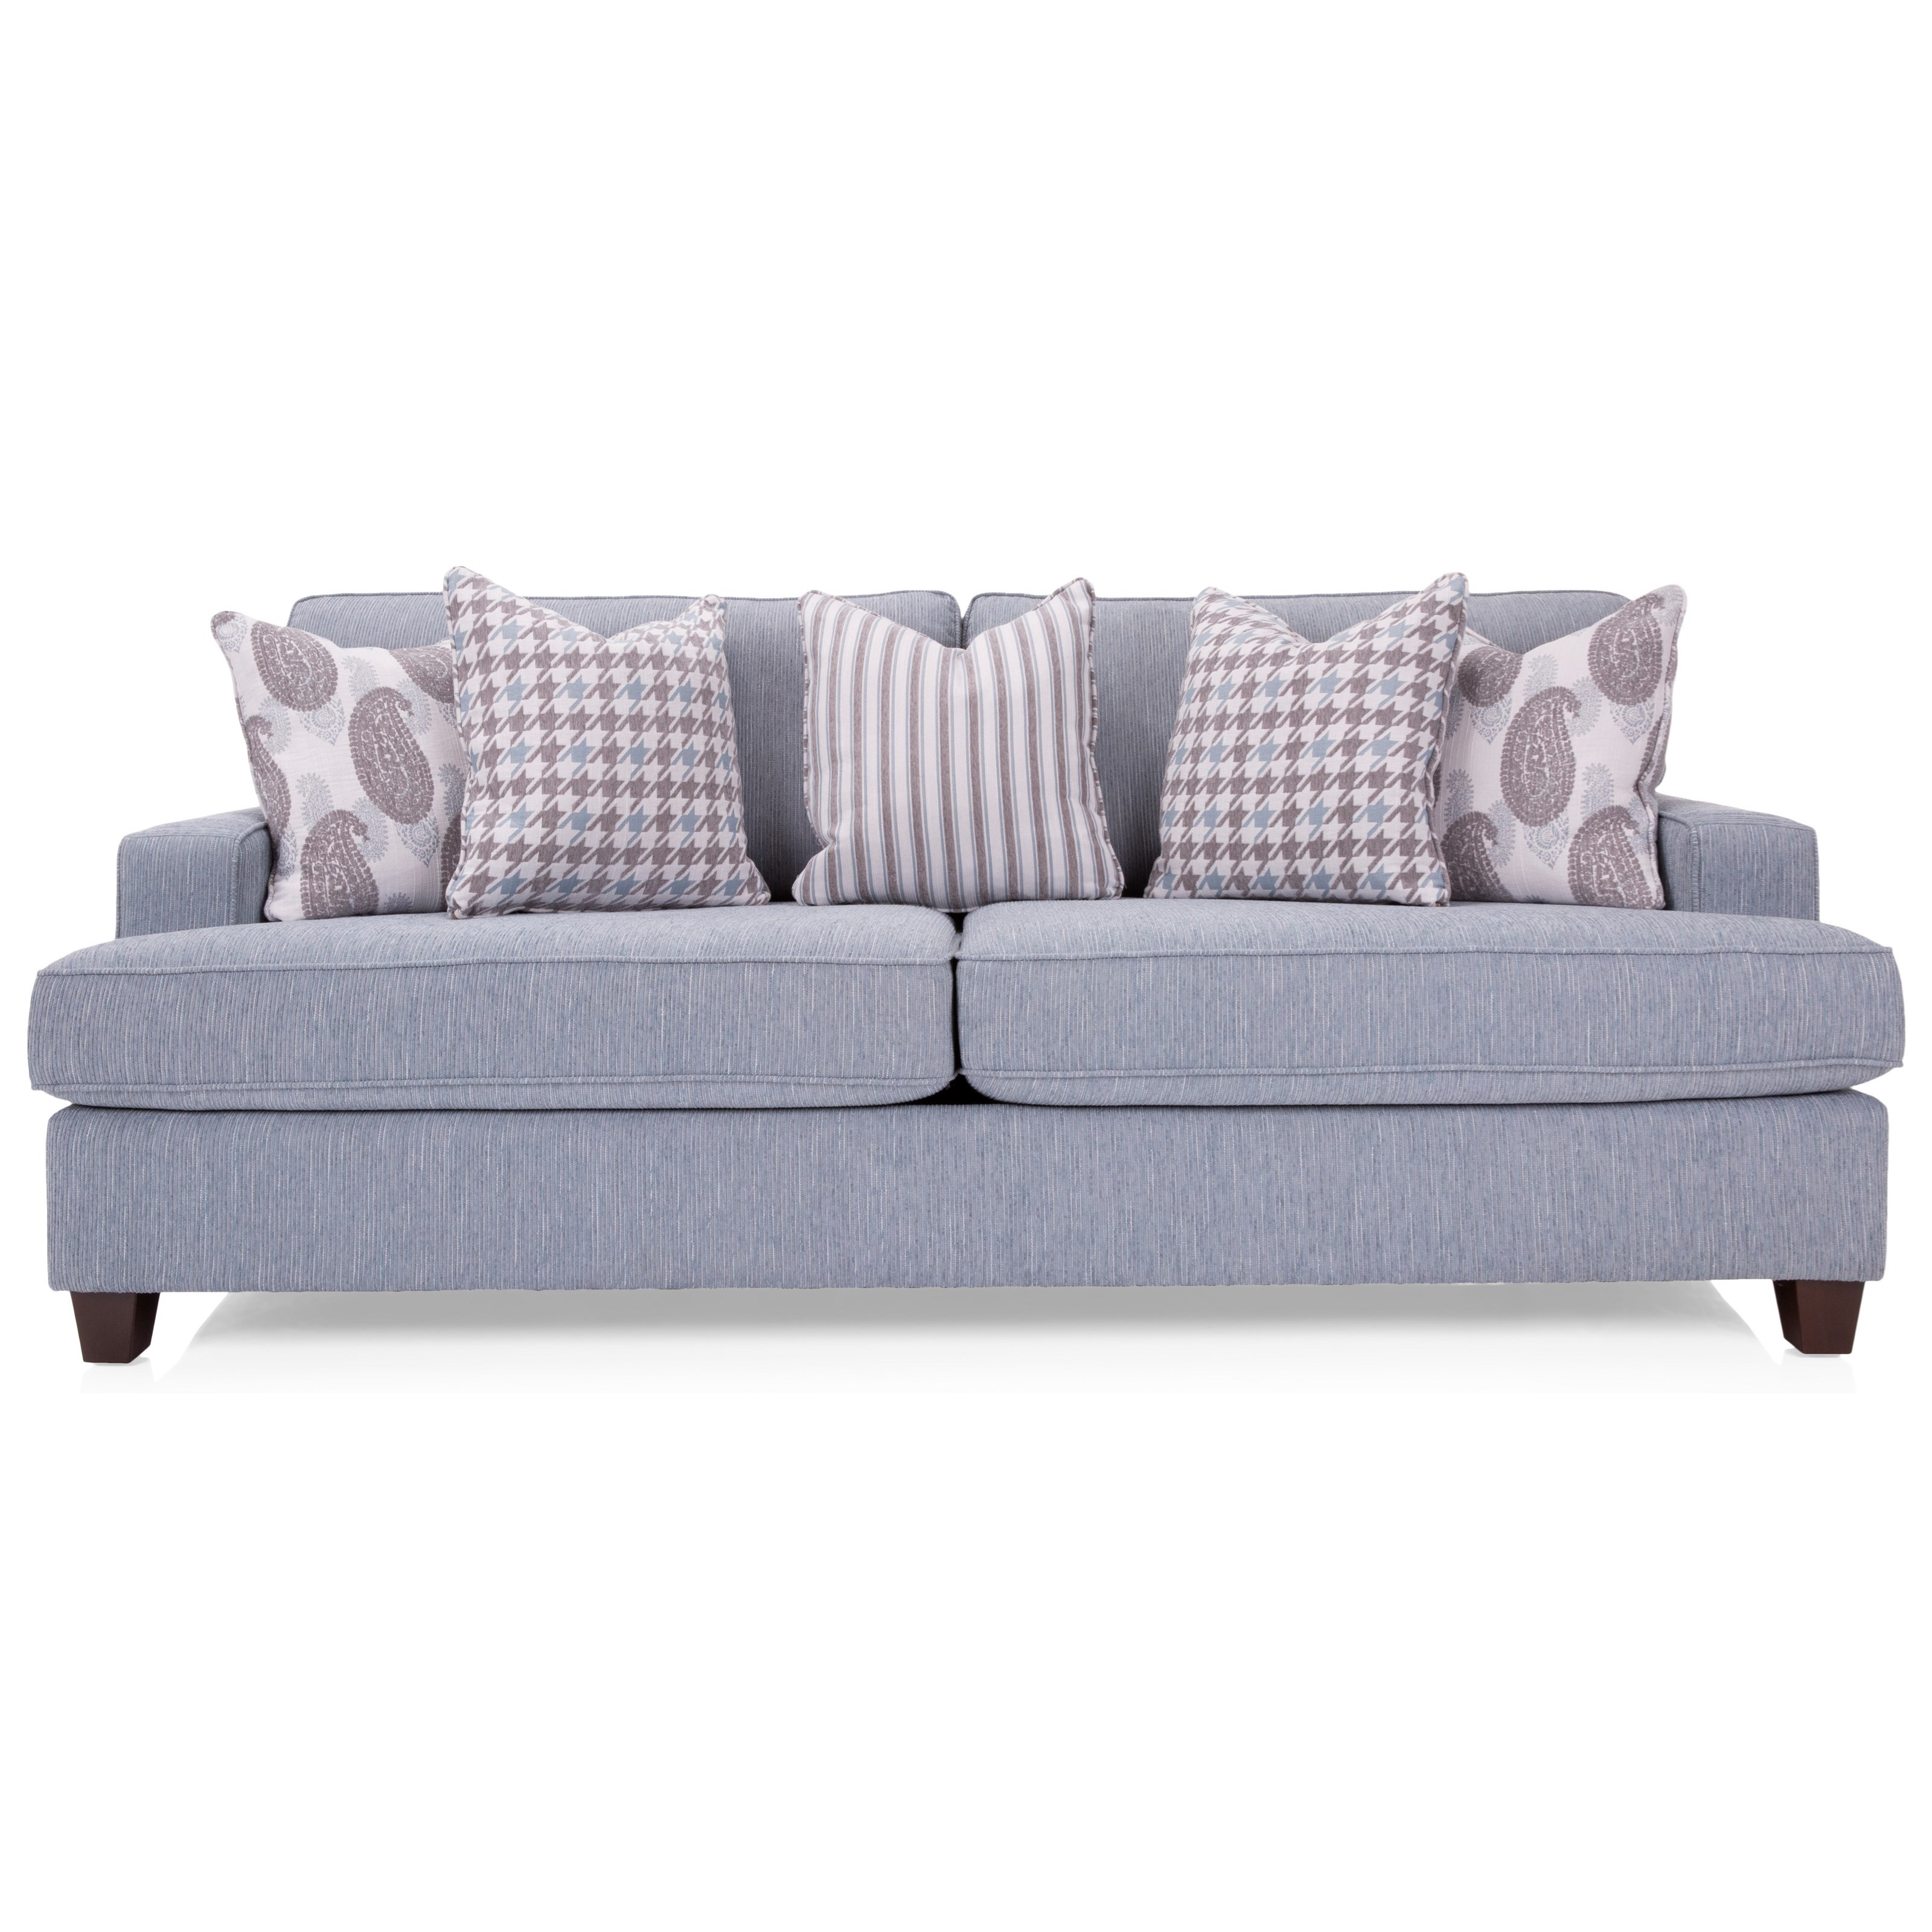 2052 Sofa by Decor-Rest at Stoney Creek Furniture